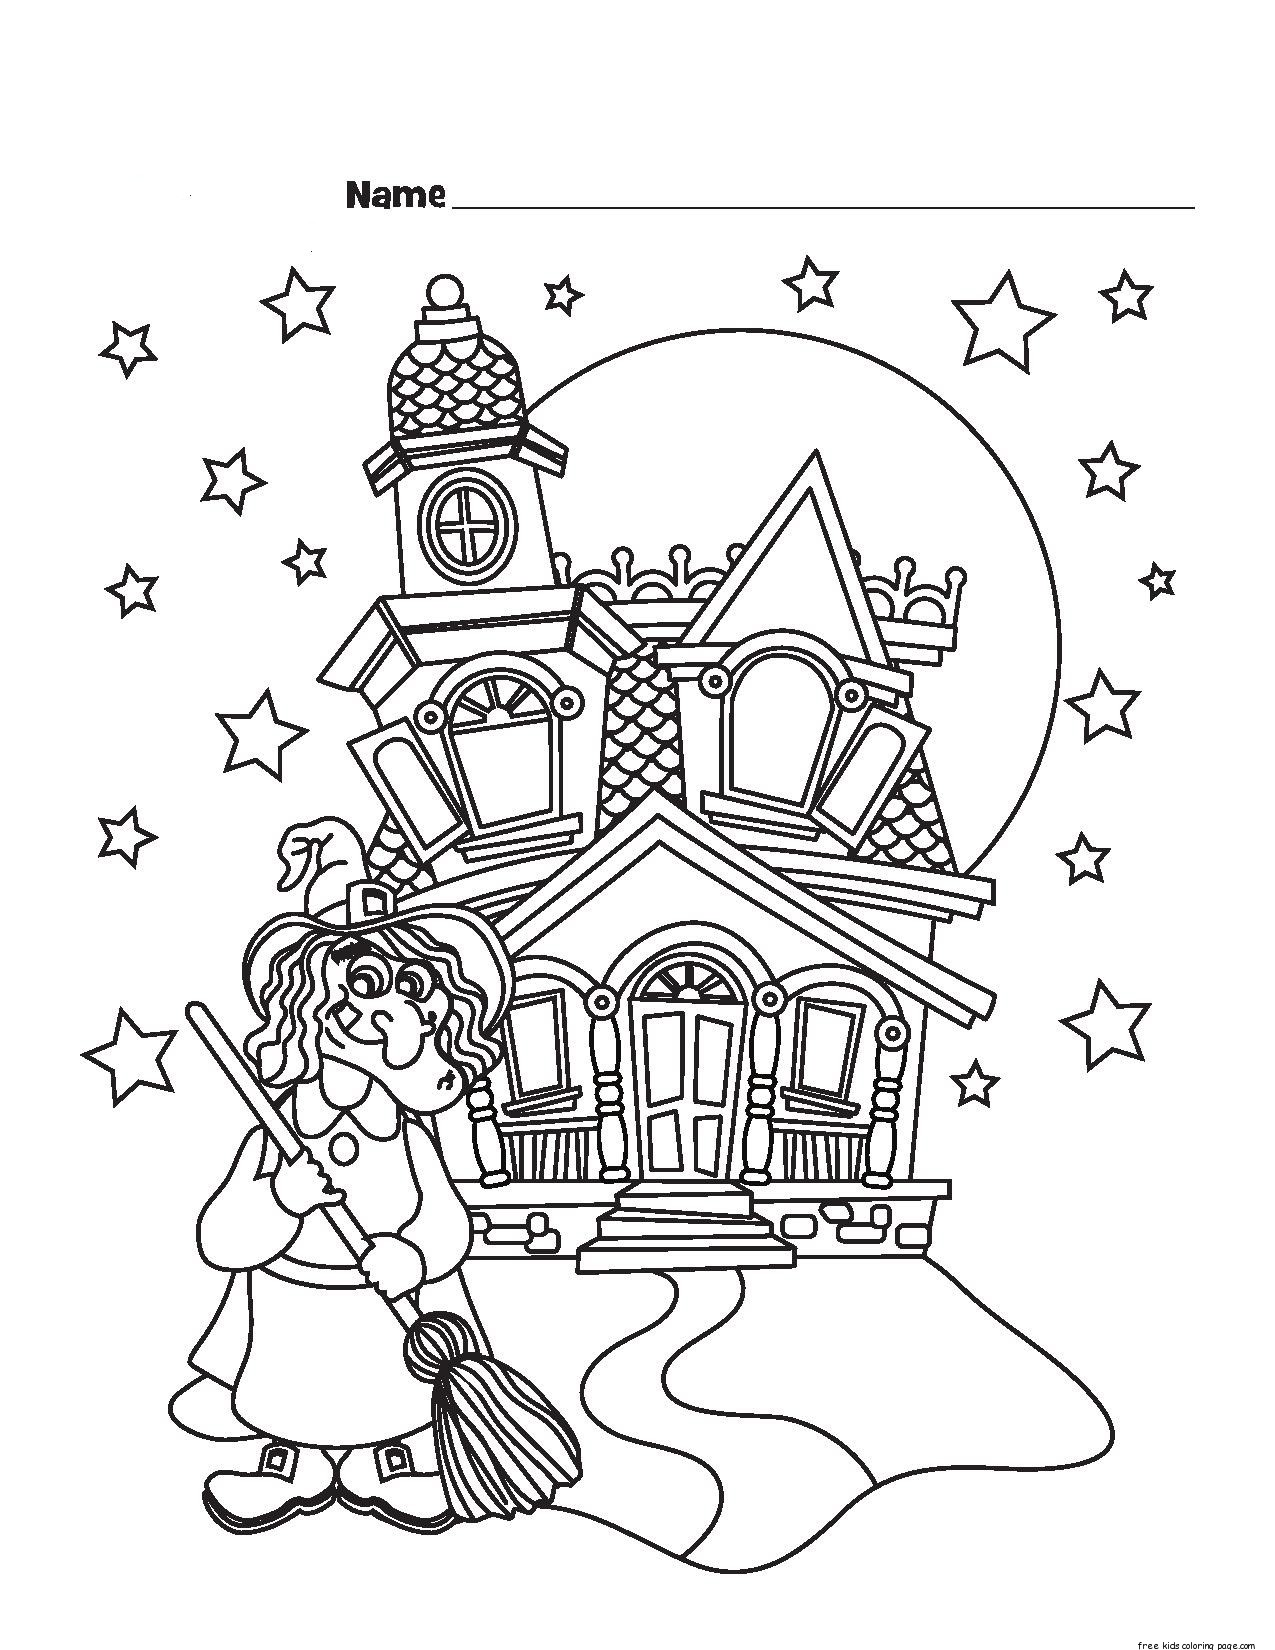 Printable halloween witch castle coloring pagesfree for Halloween print out coloring pages